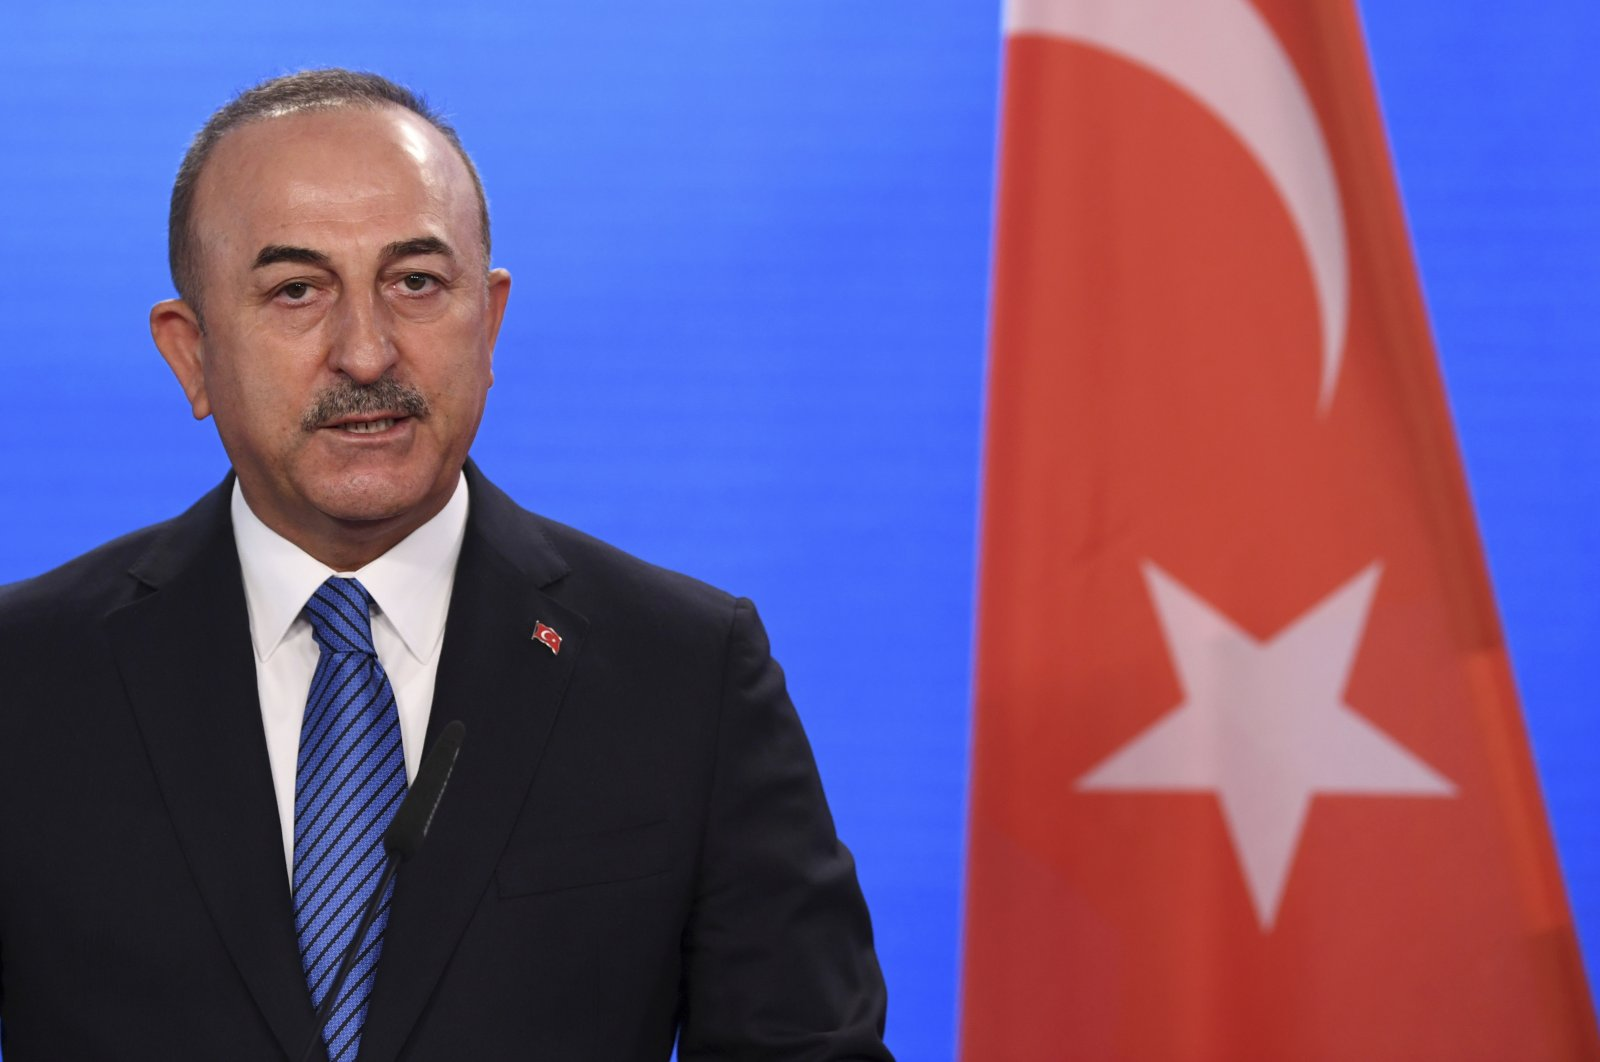 Turkish Foreign Minister Mevlüt Çavuşoğlu gives a statement to the media following a meeting with German Foreign Minister Heiko Maas at the Foreign Ministry in Berlin, Germany, May 6, 2021. (AP Photo)